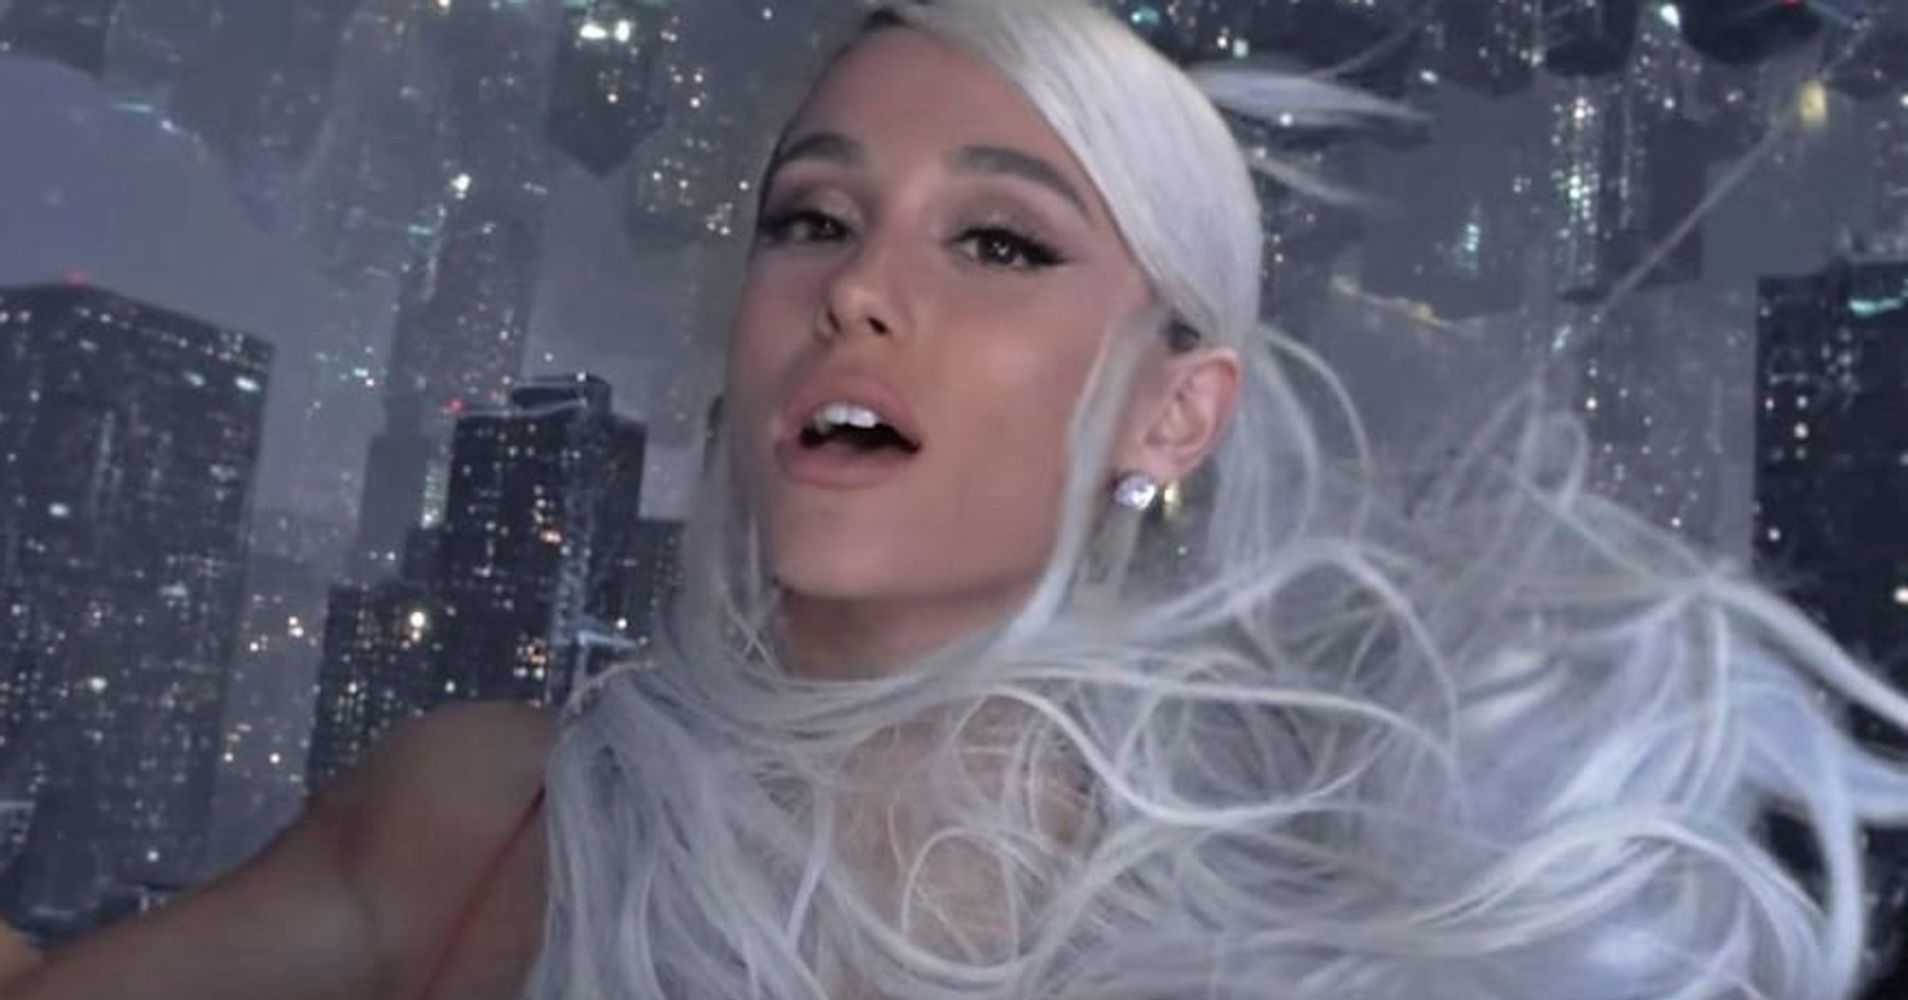 Ariana Grande Drops First Single, 'No Tears Left To Cry